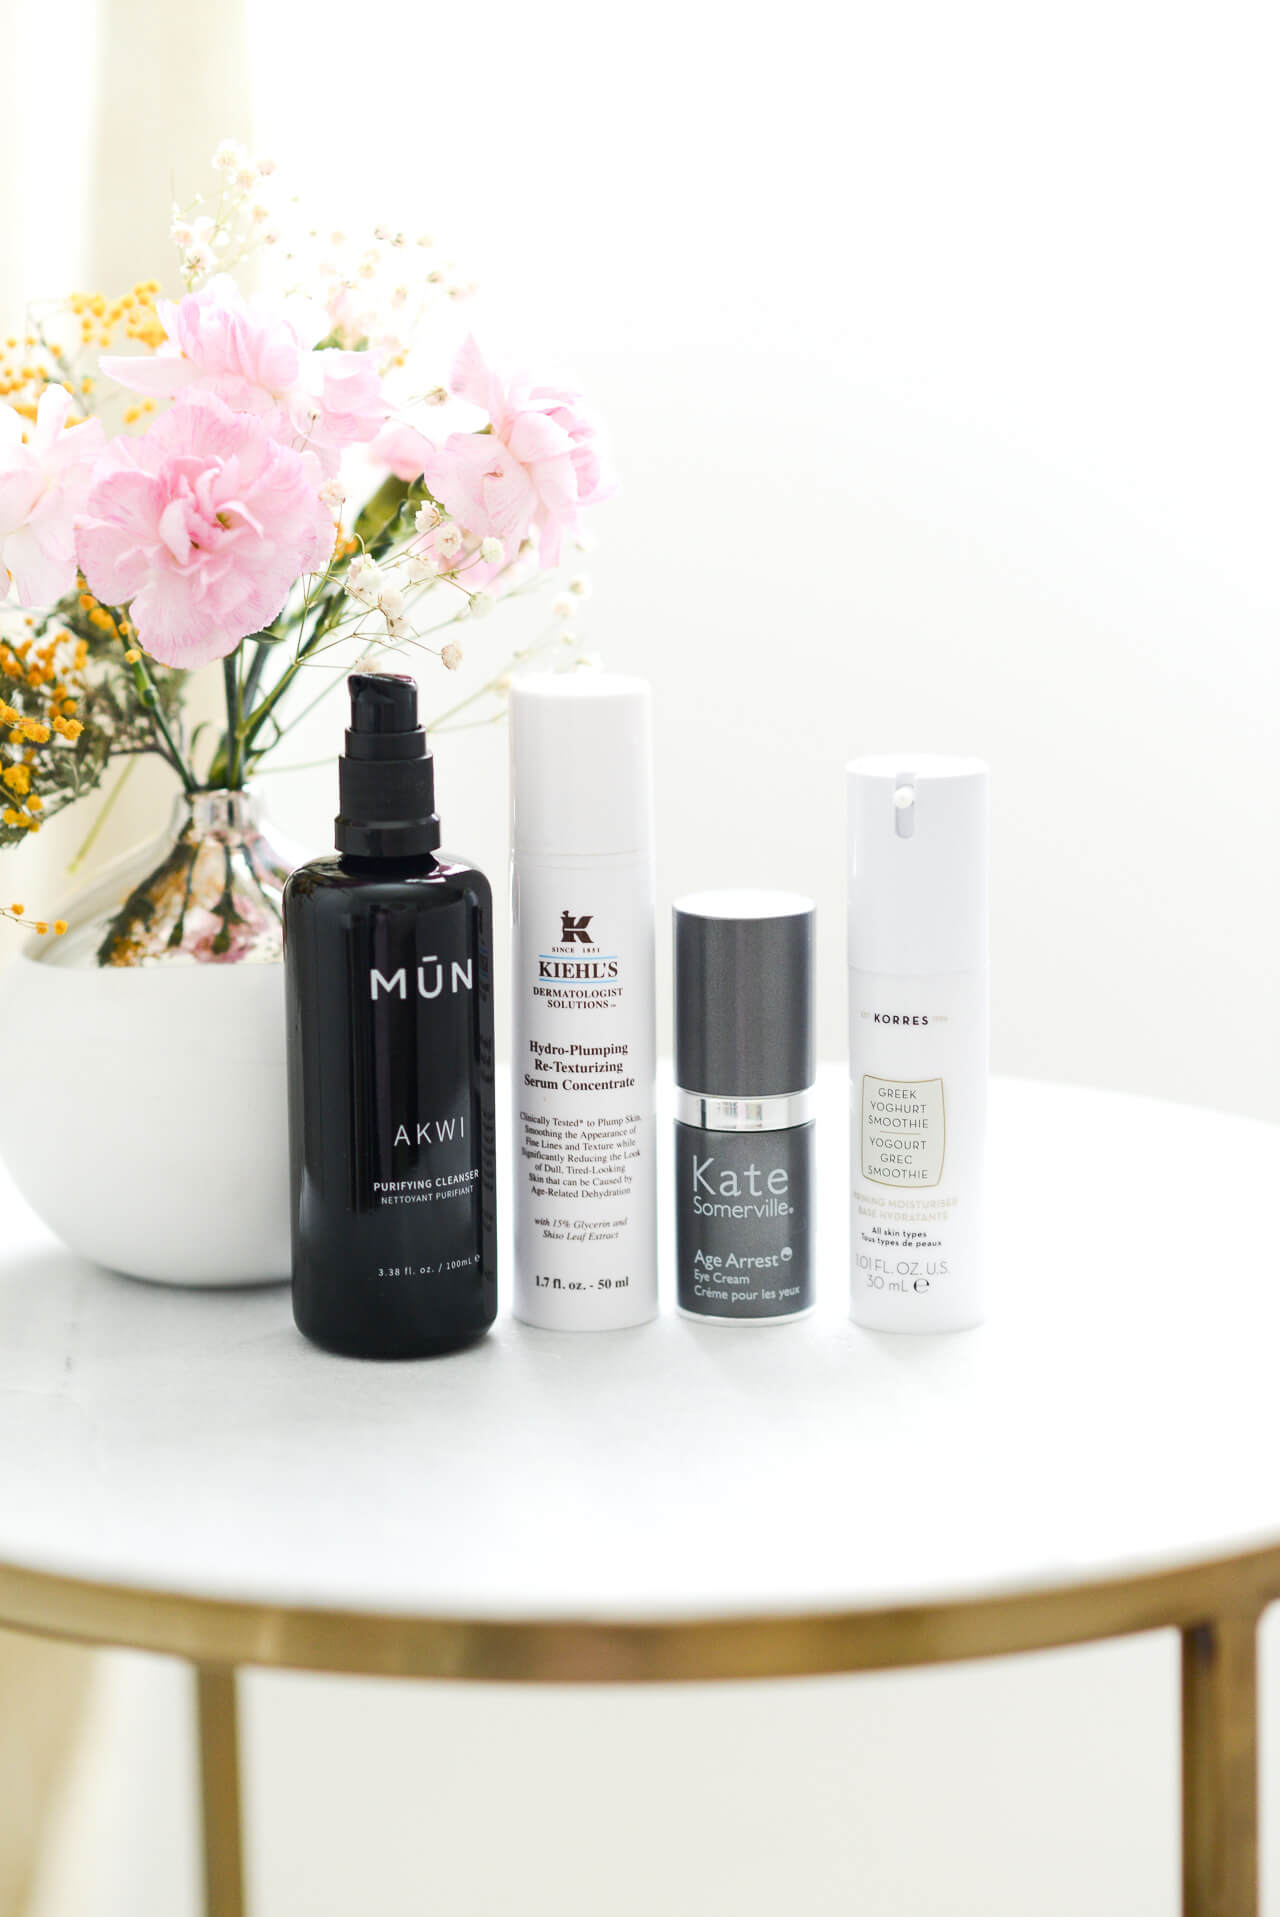 The 4 Essential Products that Need to be in Your Skincare Routine